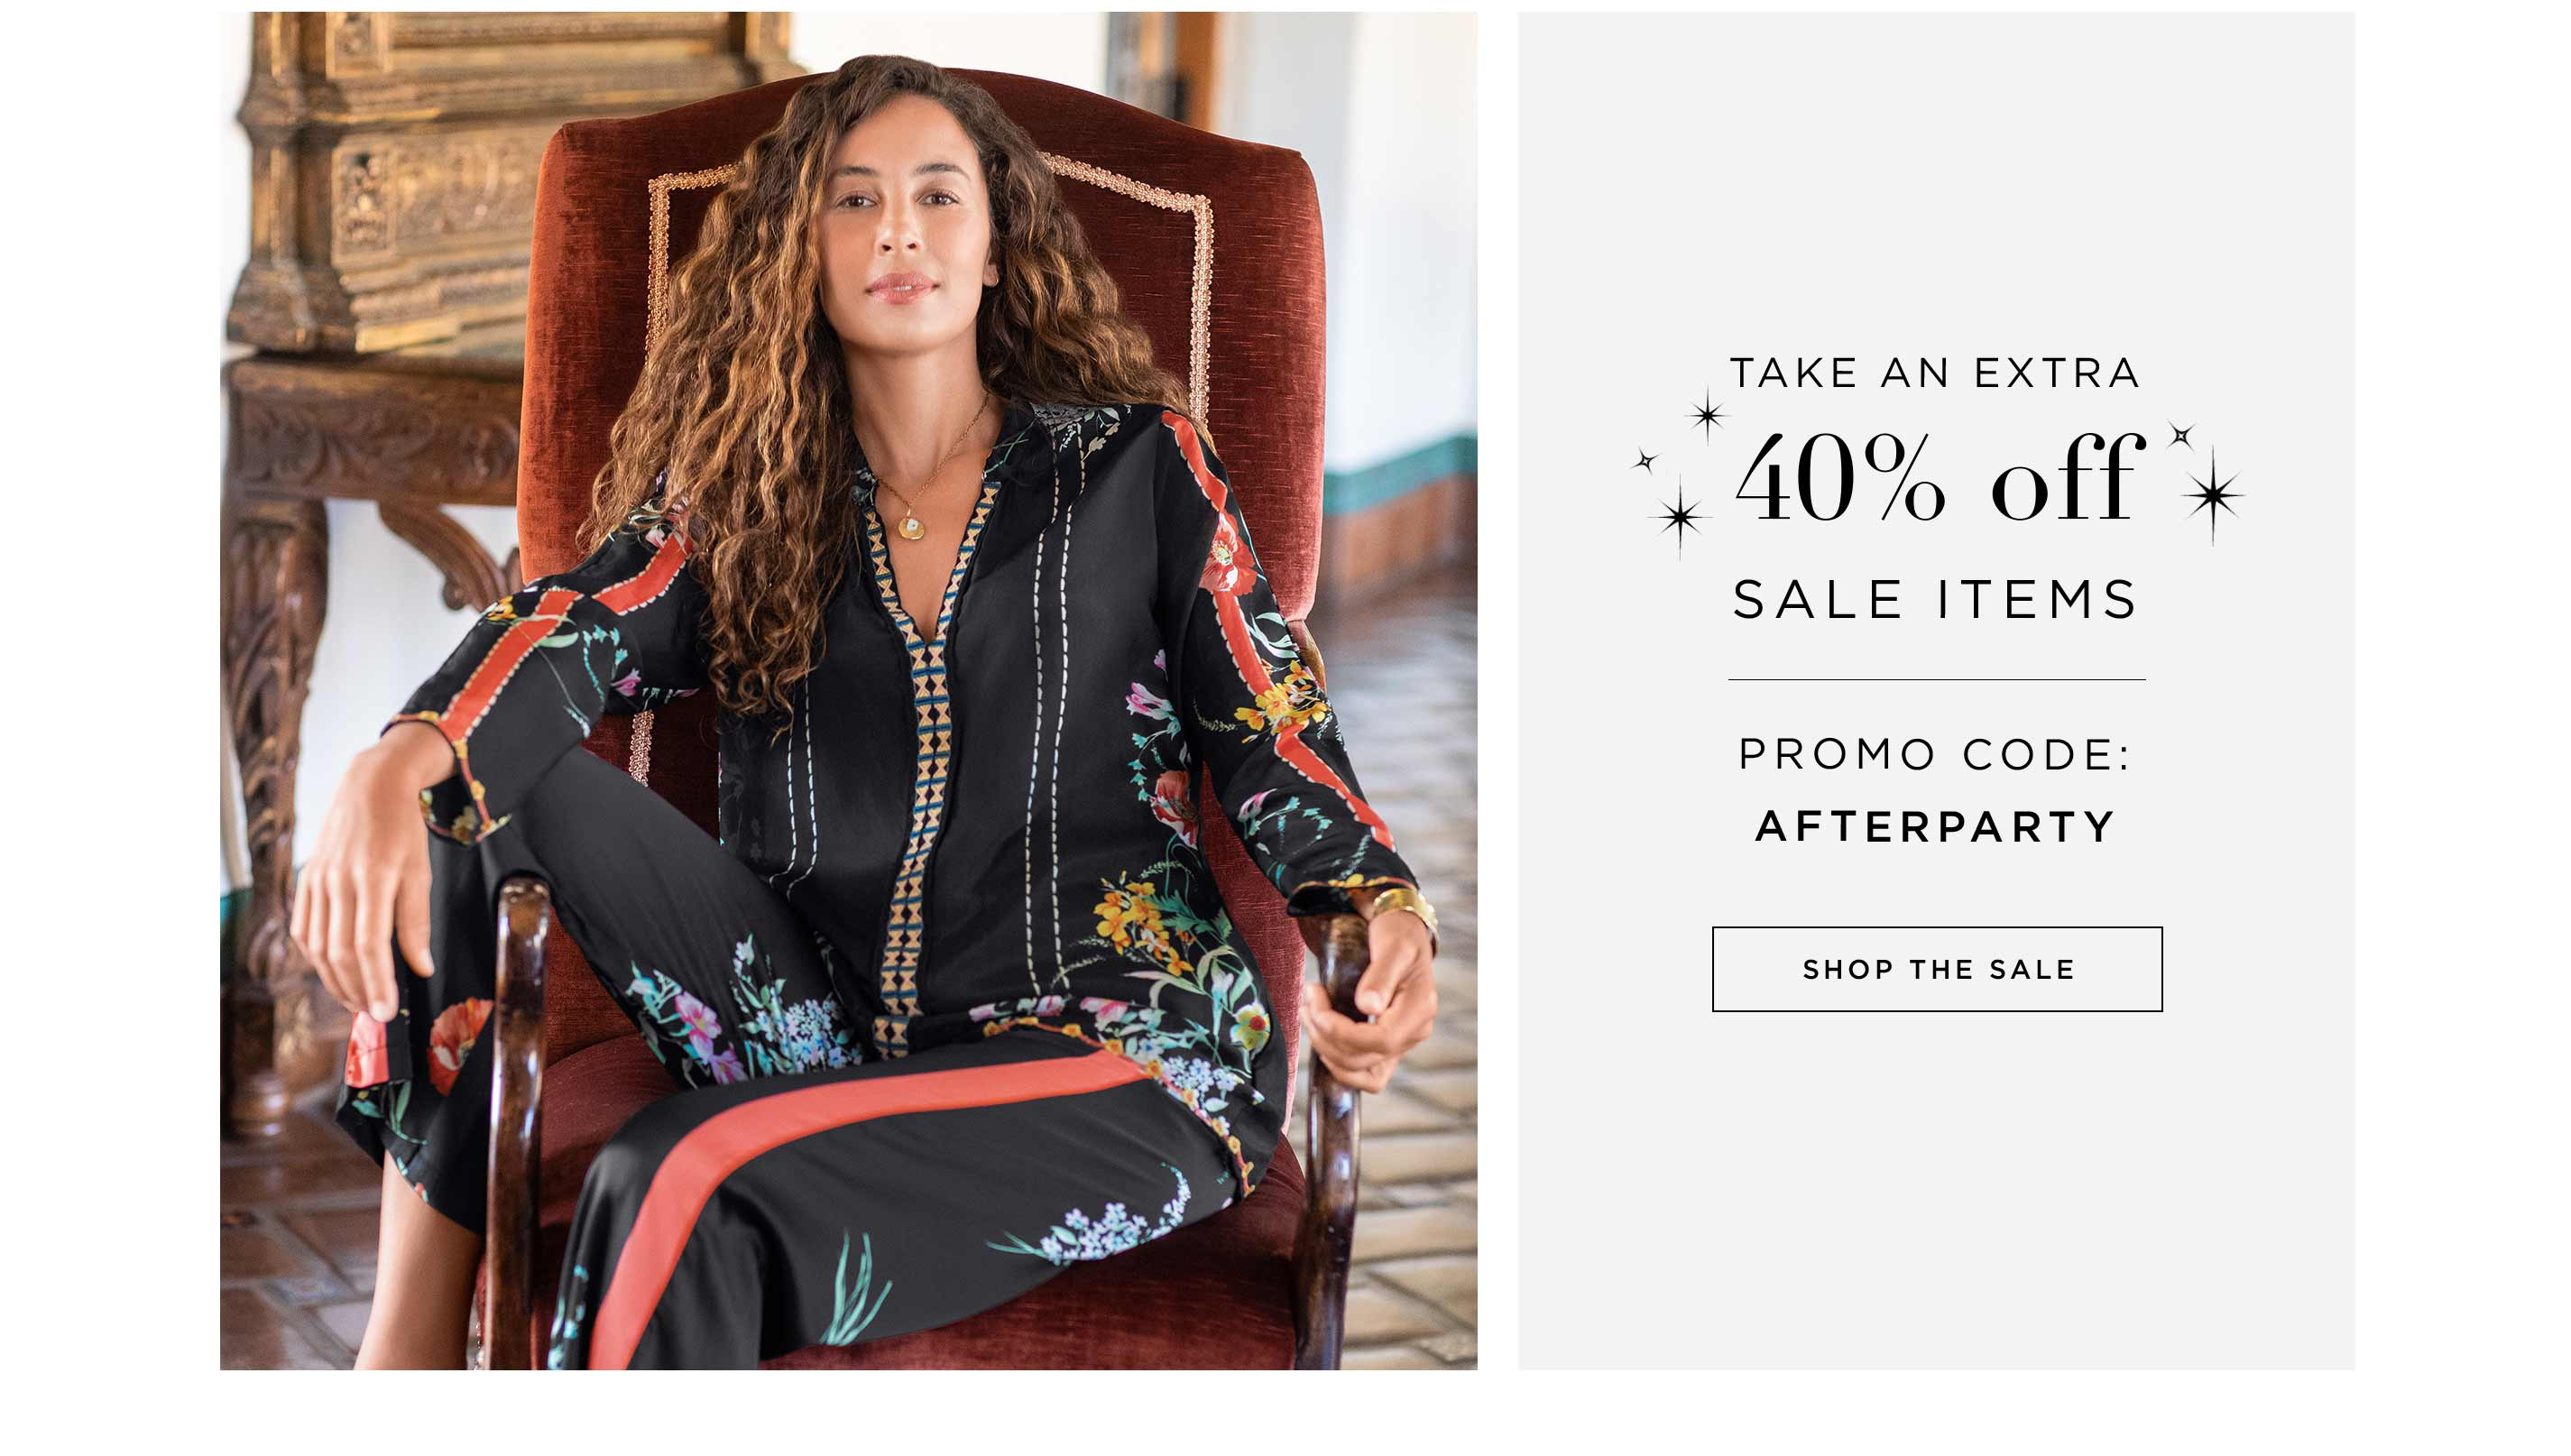 Take an Extra 40% off Sale Items - Promo code: AFTERPARTY - Shop the Sale